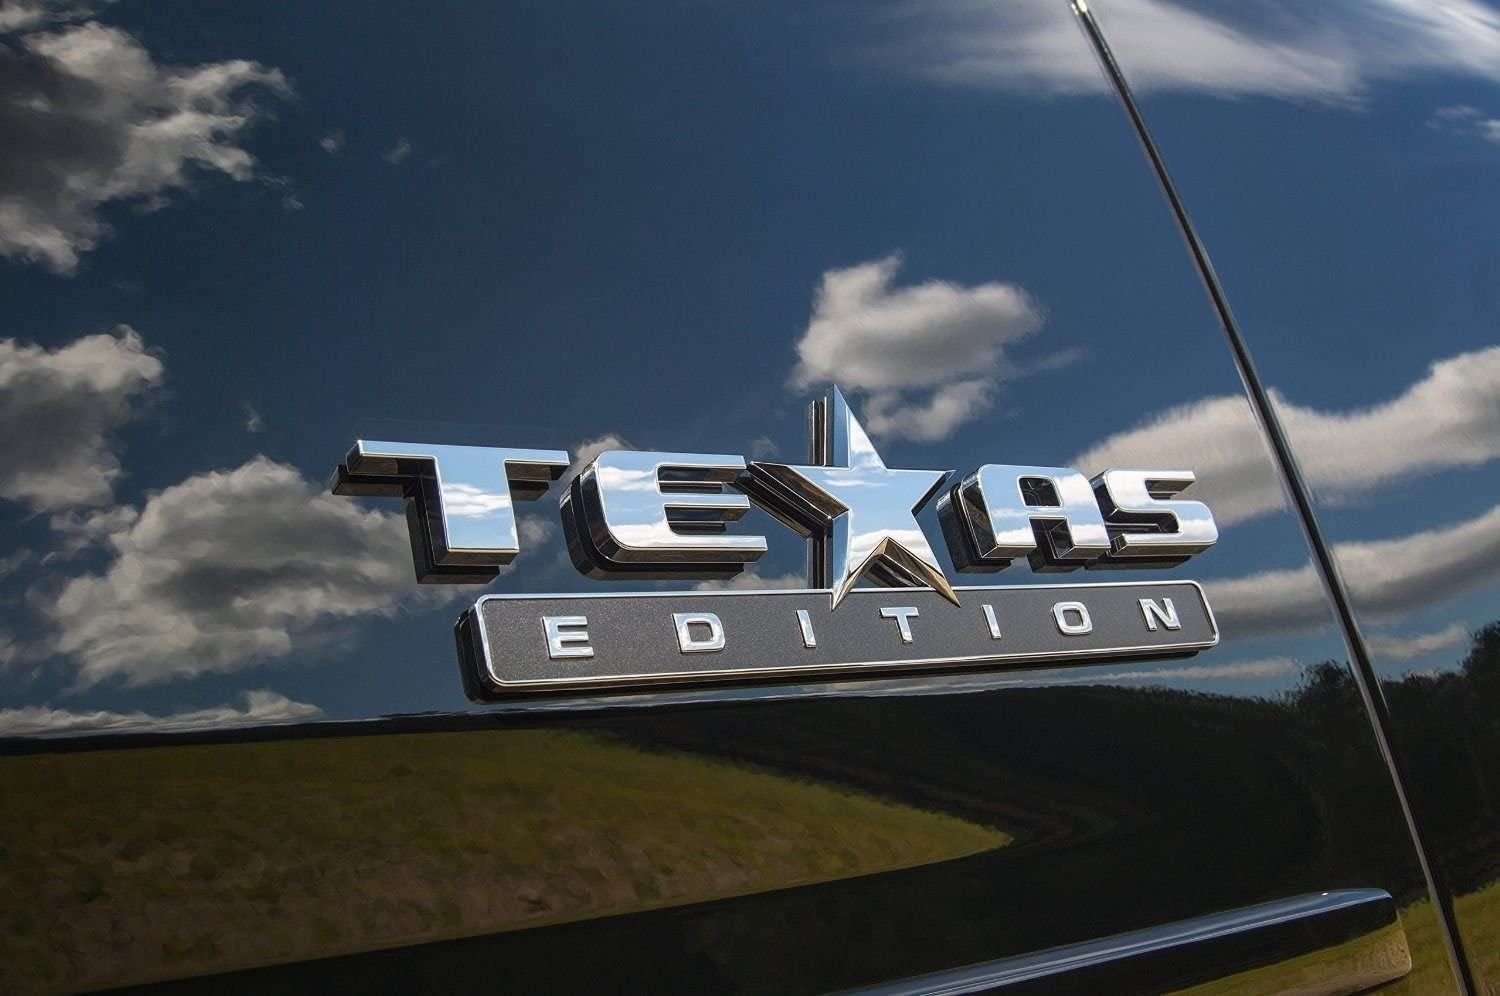 TEXAS FLAG EDITION Emblem Badge Truck Tailgate Sticker Decal ABS Chrome